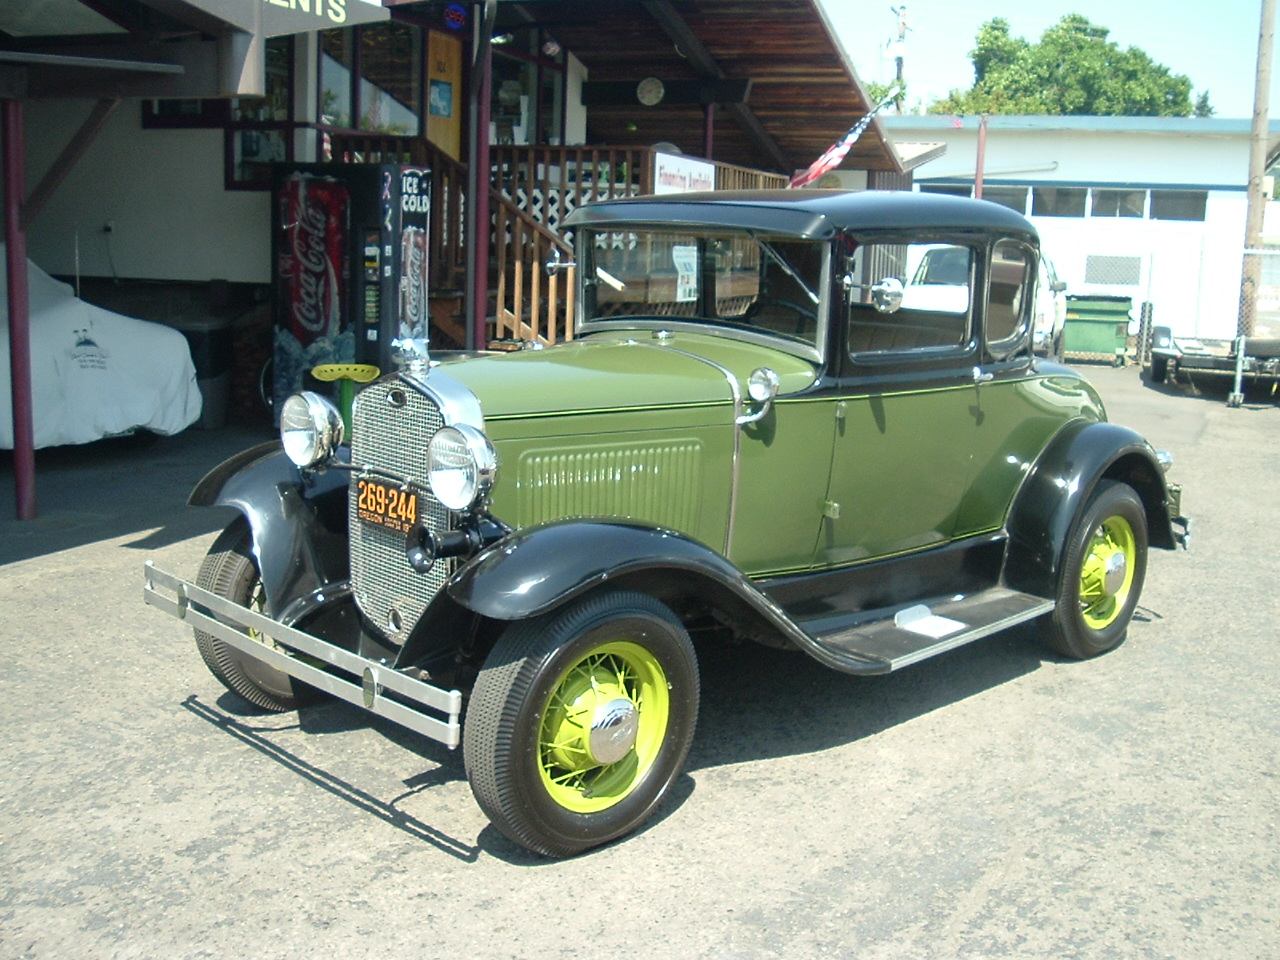 Hamilton Auto Sales 1980 Ford Custom Interior 1931 Model A Coupe All Steel Car W Original Running Gear Restored With Some Upgrades Including 12 Volt System Alt And Turn Signals